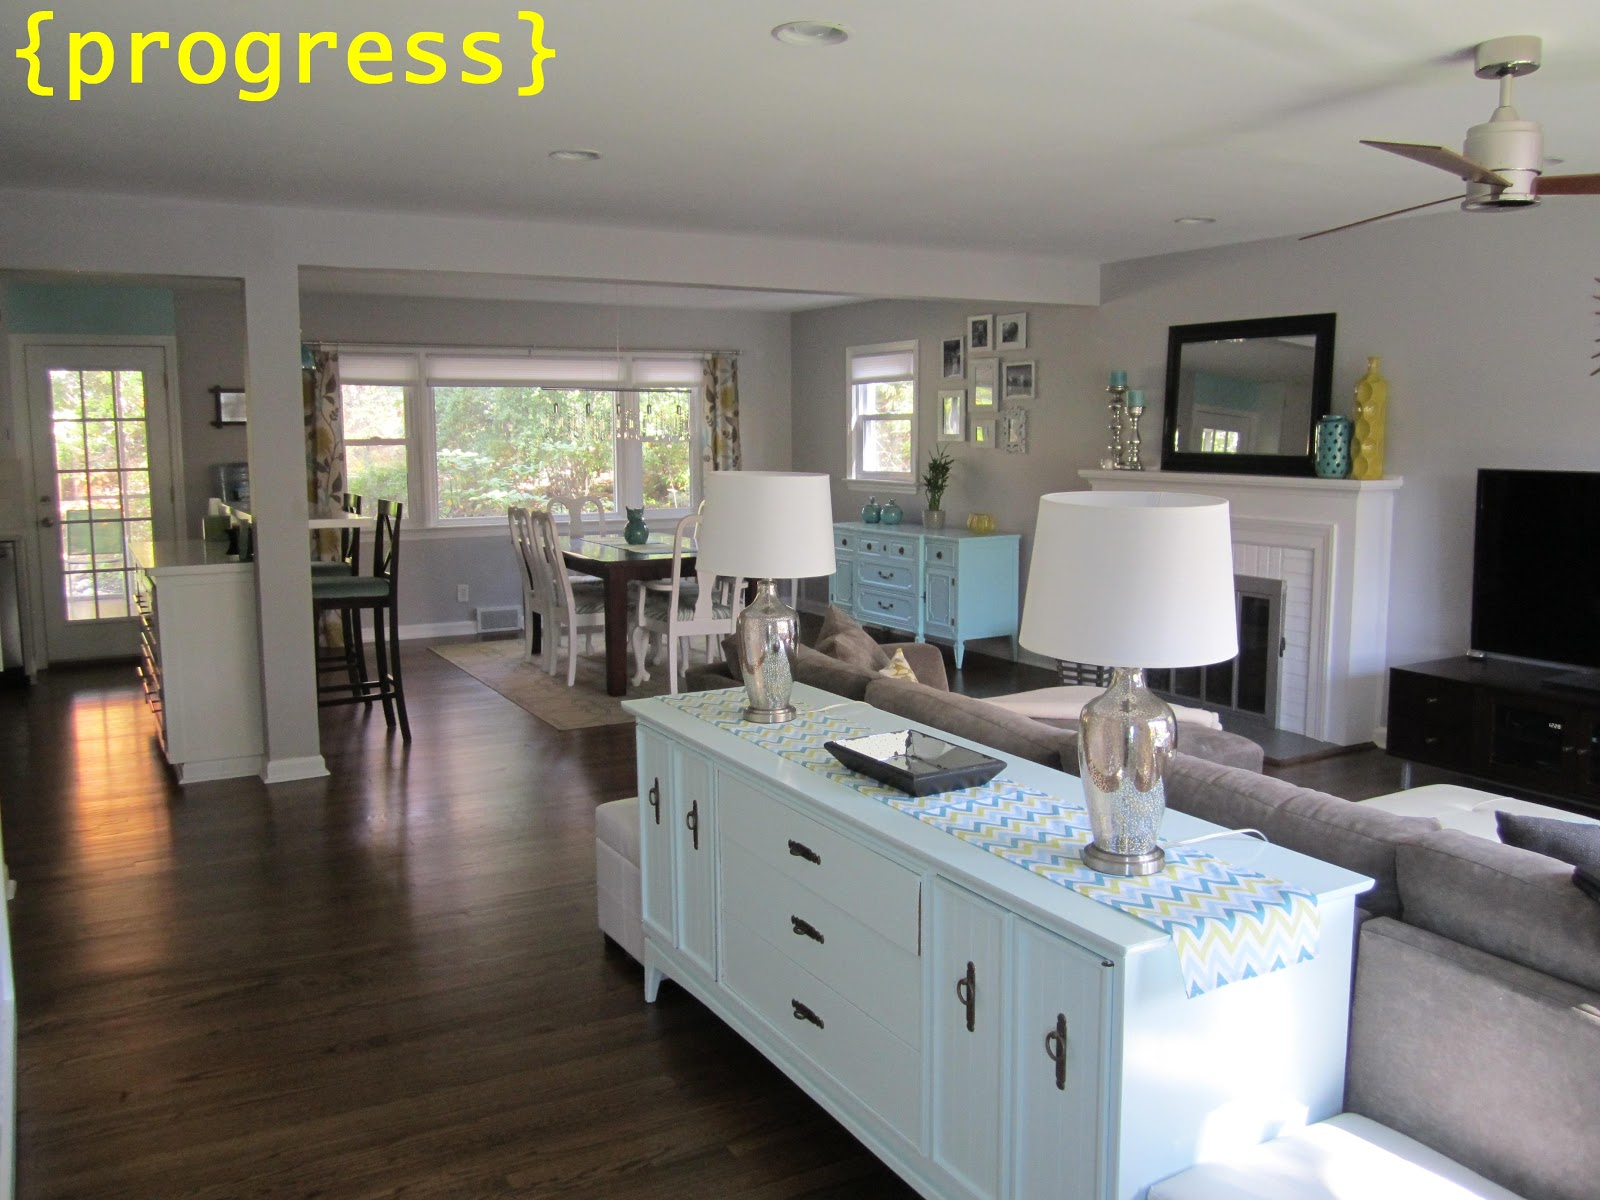 52 Mantels Retro Ranch Renovation Before Amp After